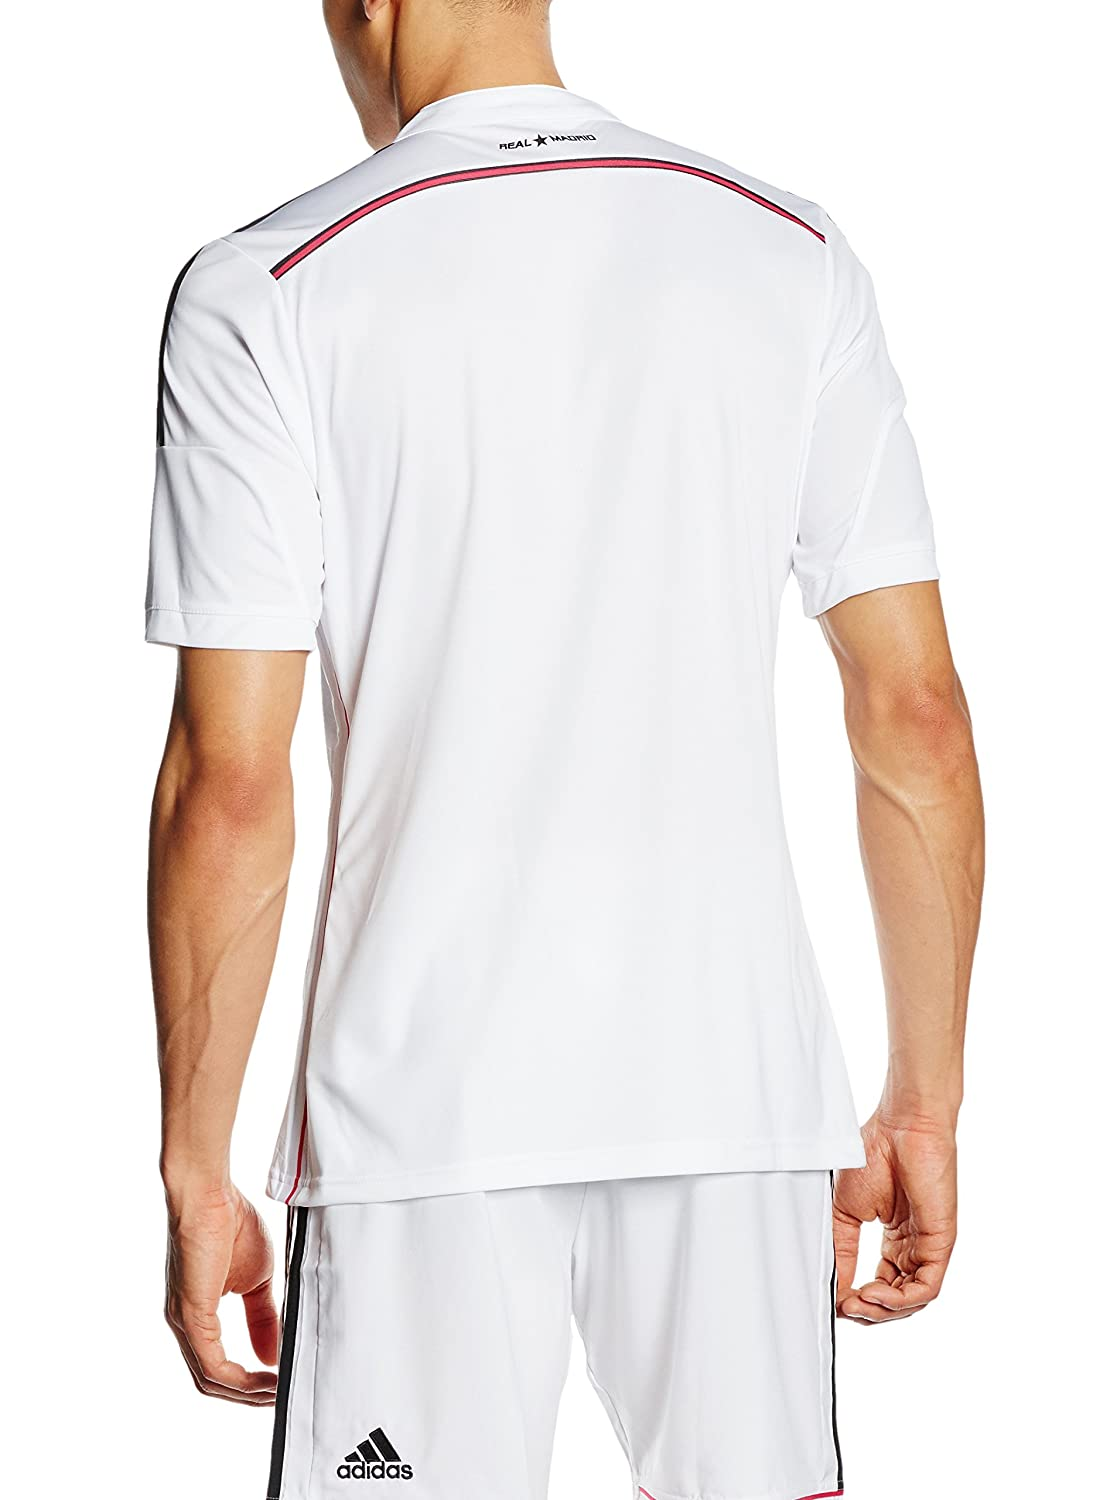 2dde14f11 adidas First Team Real Madrid 2014 2015 Official Shirt  adidas   Amazon.co.uk  Sports   Outdoors